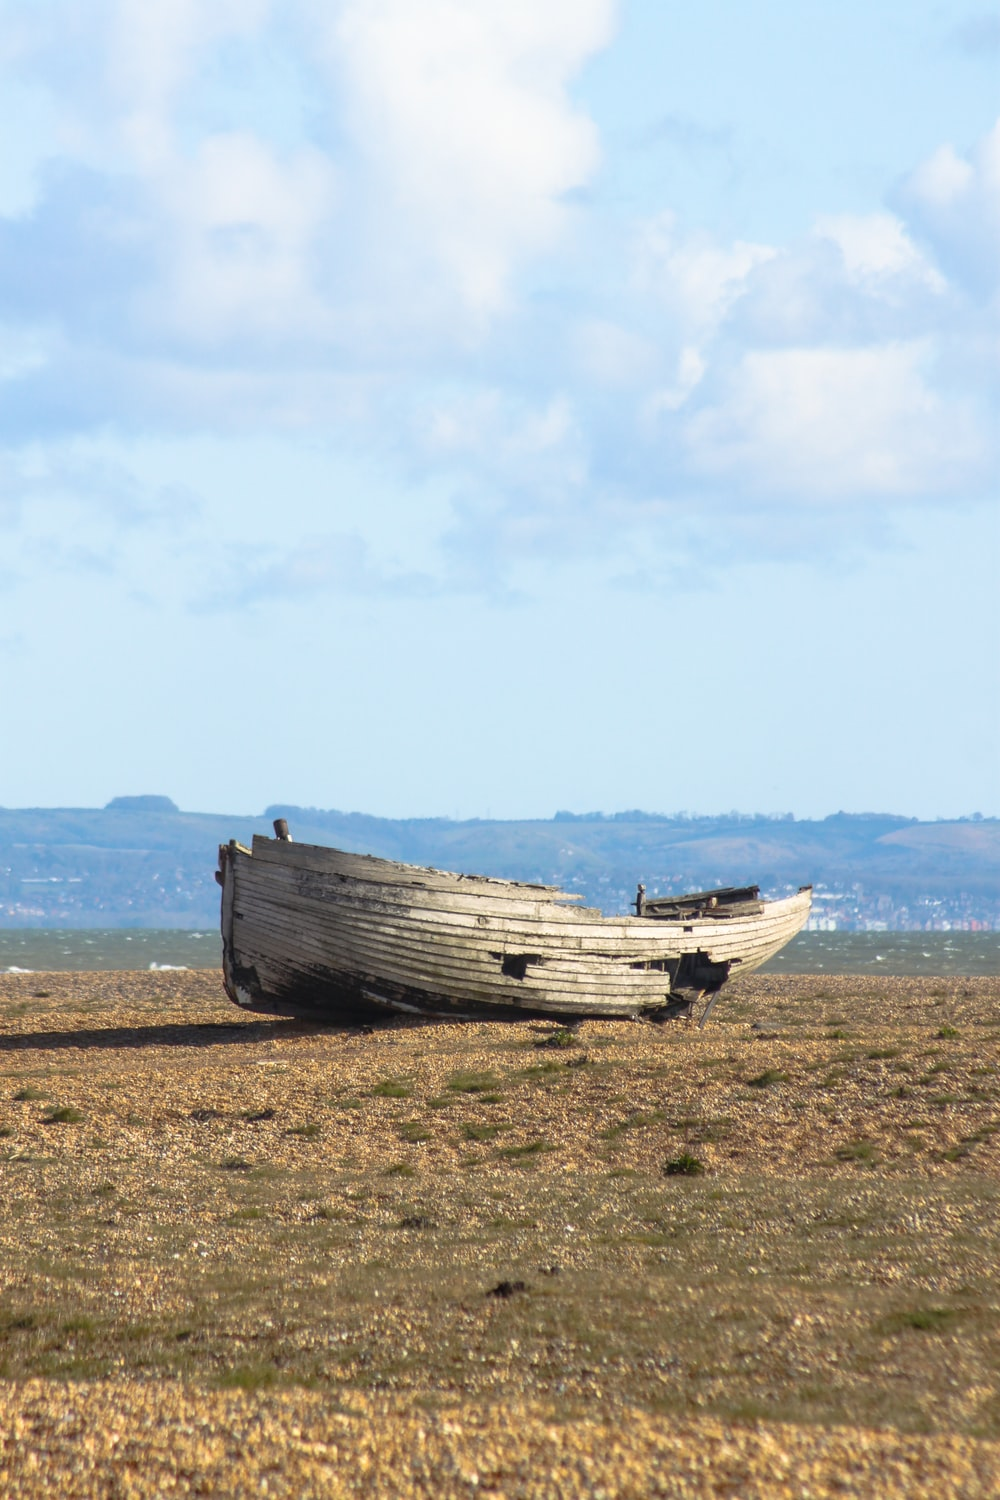 white boat on brown field under white clouds during daytime